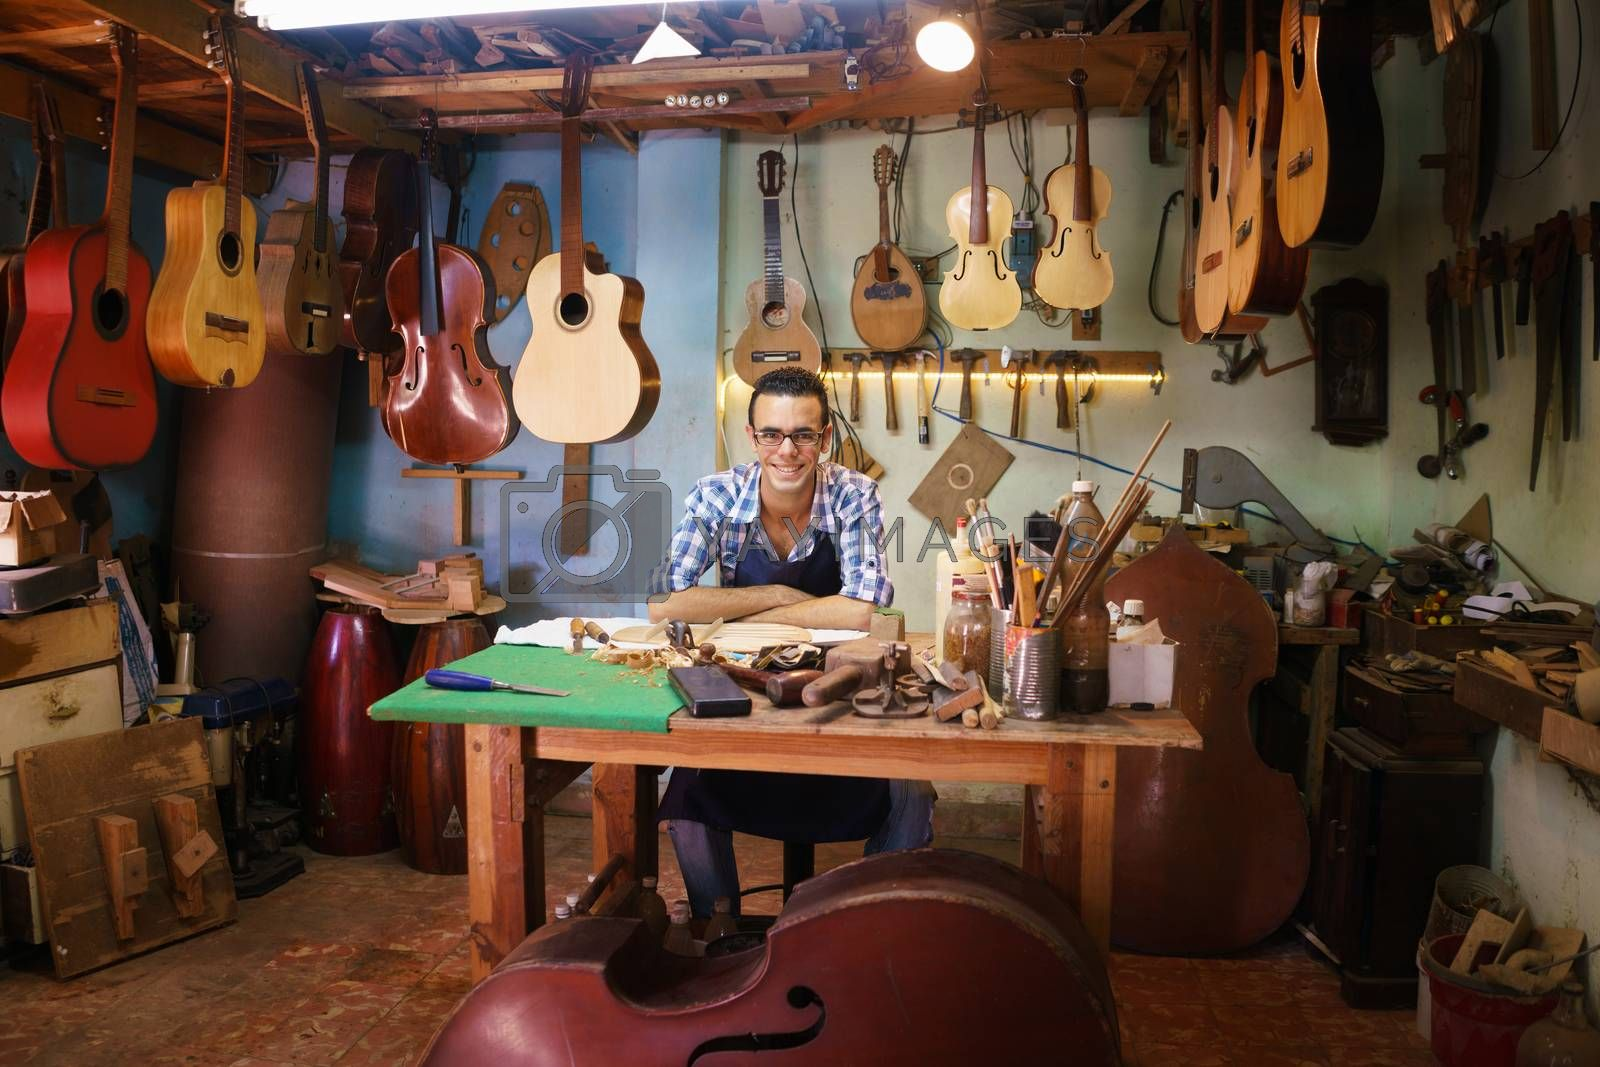 Lute maker shop and acoustic music instruments: portrait of a young adult artisan sitting at his desk and smiling at camera. He is surrounded by many guitars, mandolins and violins.